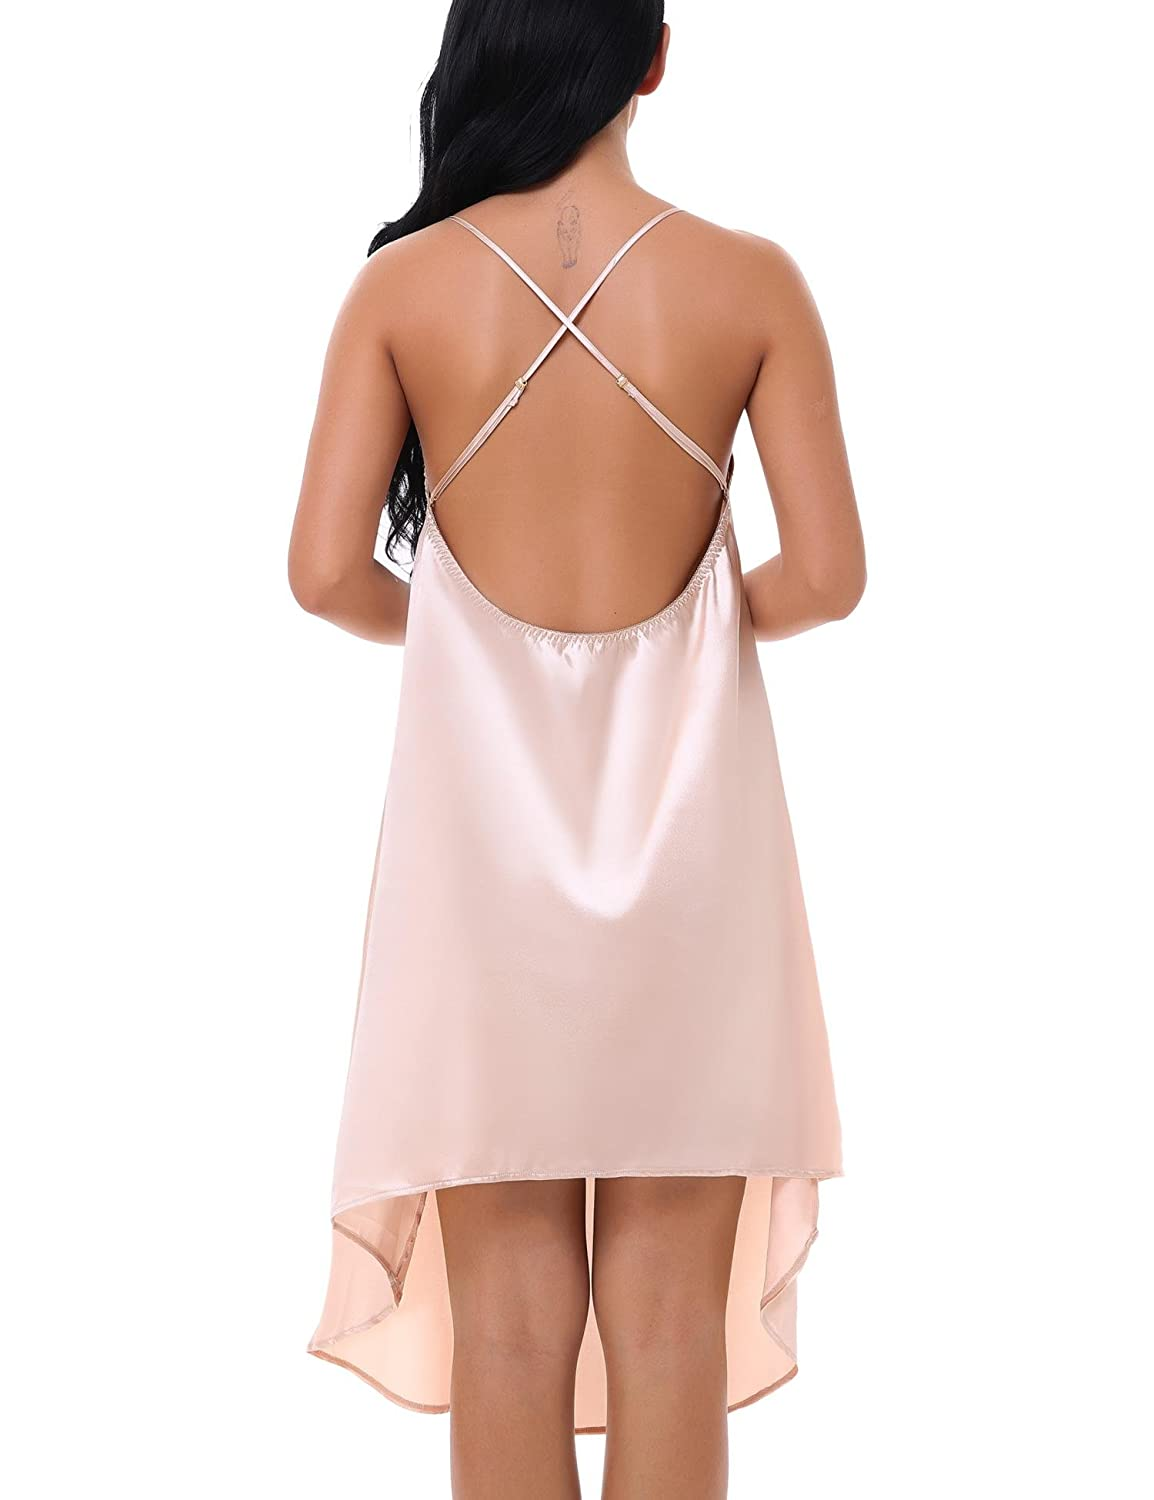 d337d9be64 100% Polyester Fabric  100% Polyester Womens sexy chemise lingerie satin  sleepwear features sexy neckline